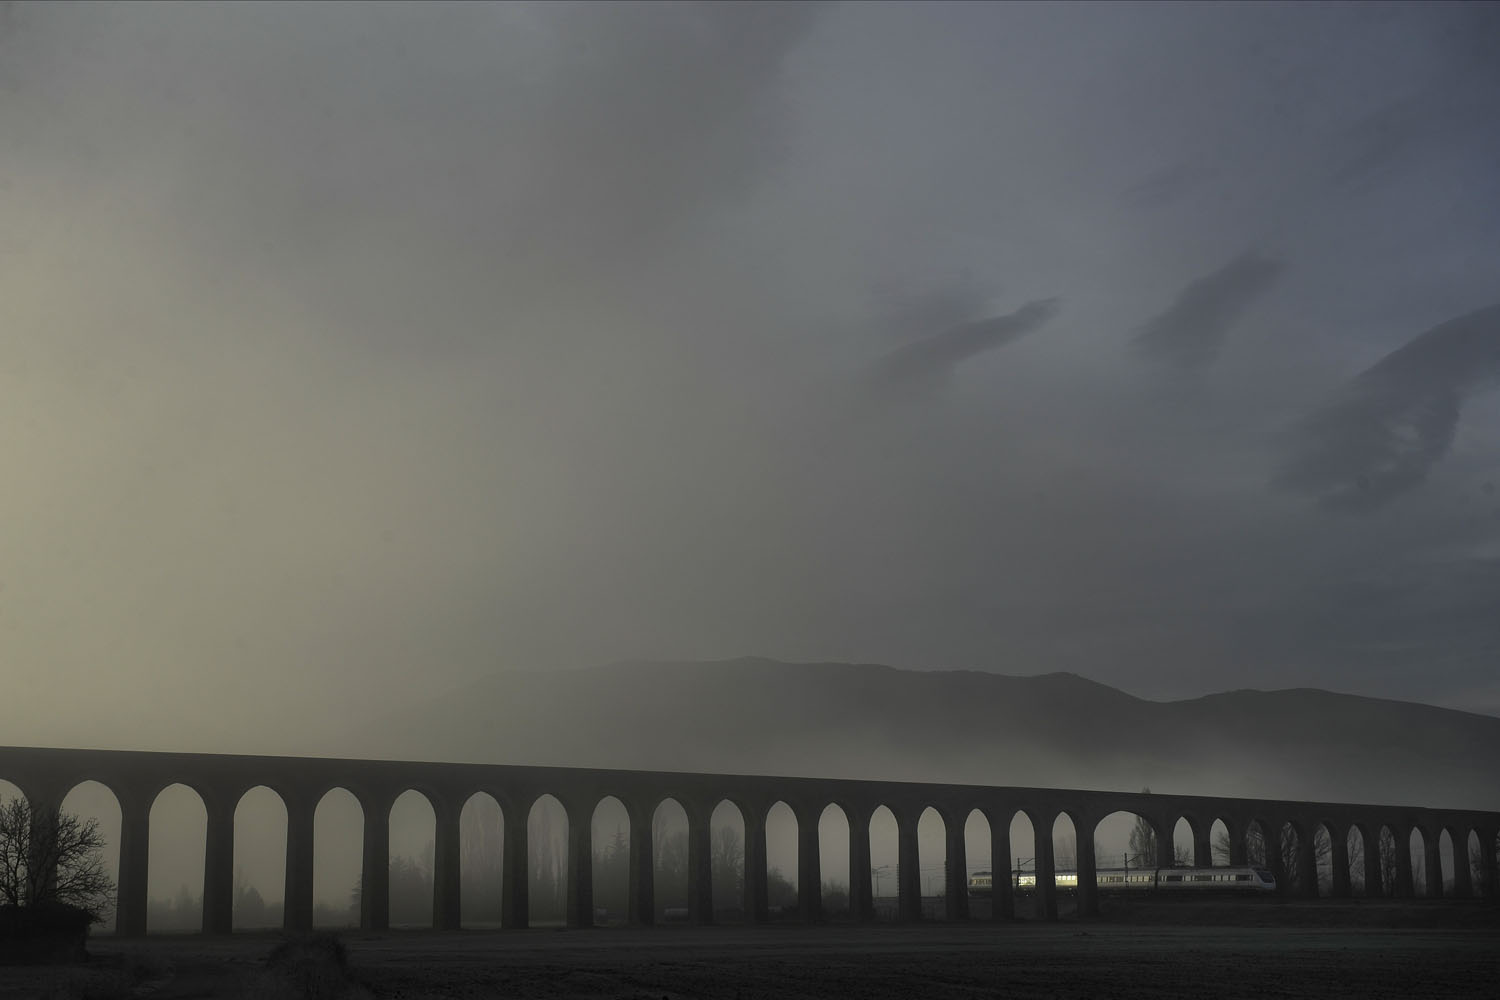 Dec. 30, 2013. The fog covers the landscape while a train crosses an ancient aqueduct, bottom right, in Noain, northern Spain.